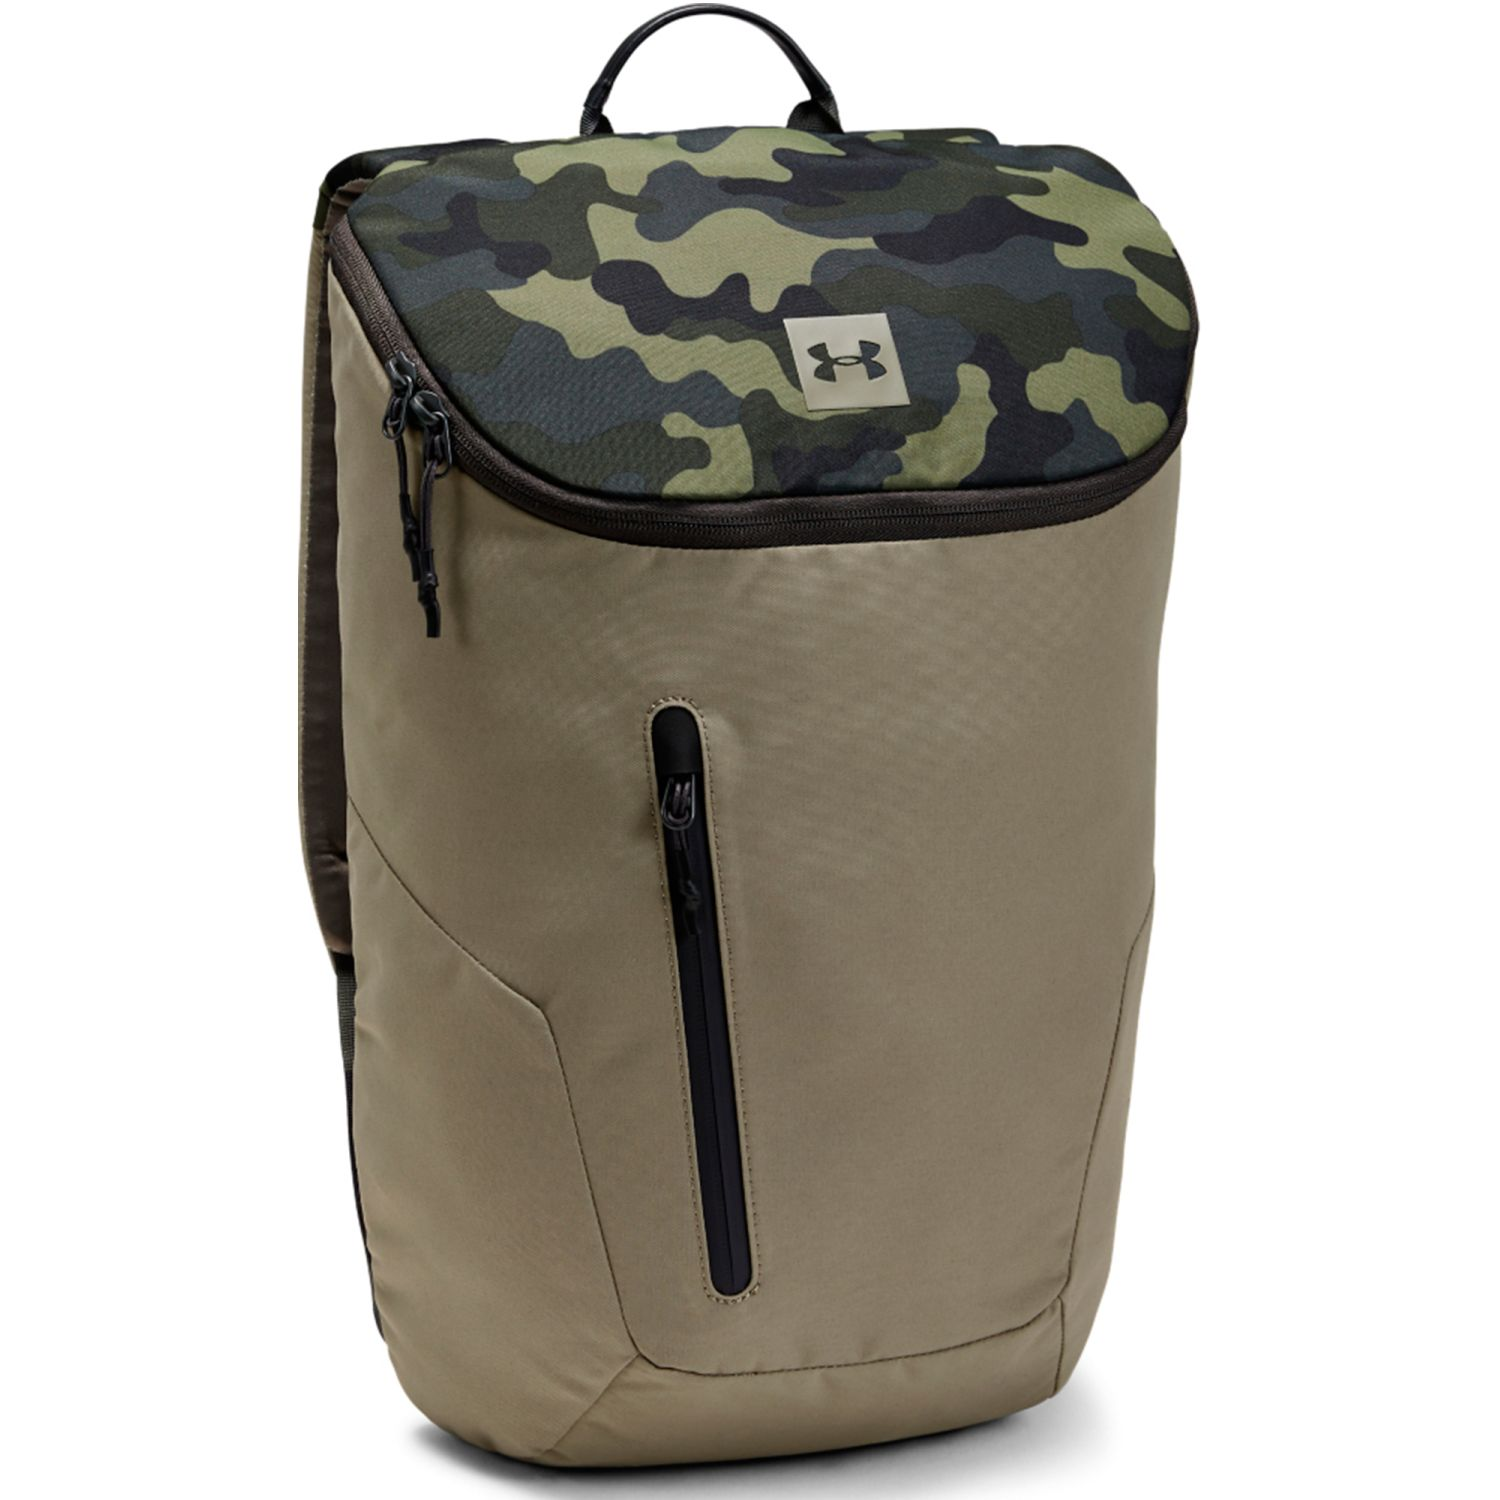 Under Armour Sportstyle Backpack-BRN Camuflado Mochilas Multipropósitos